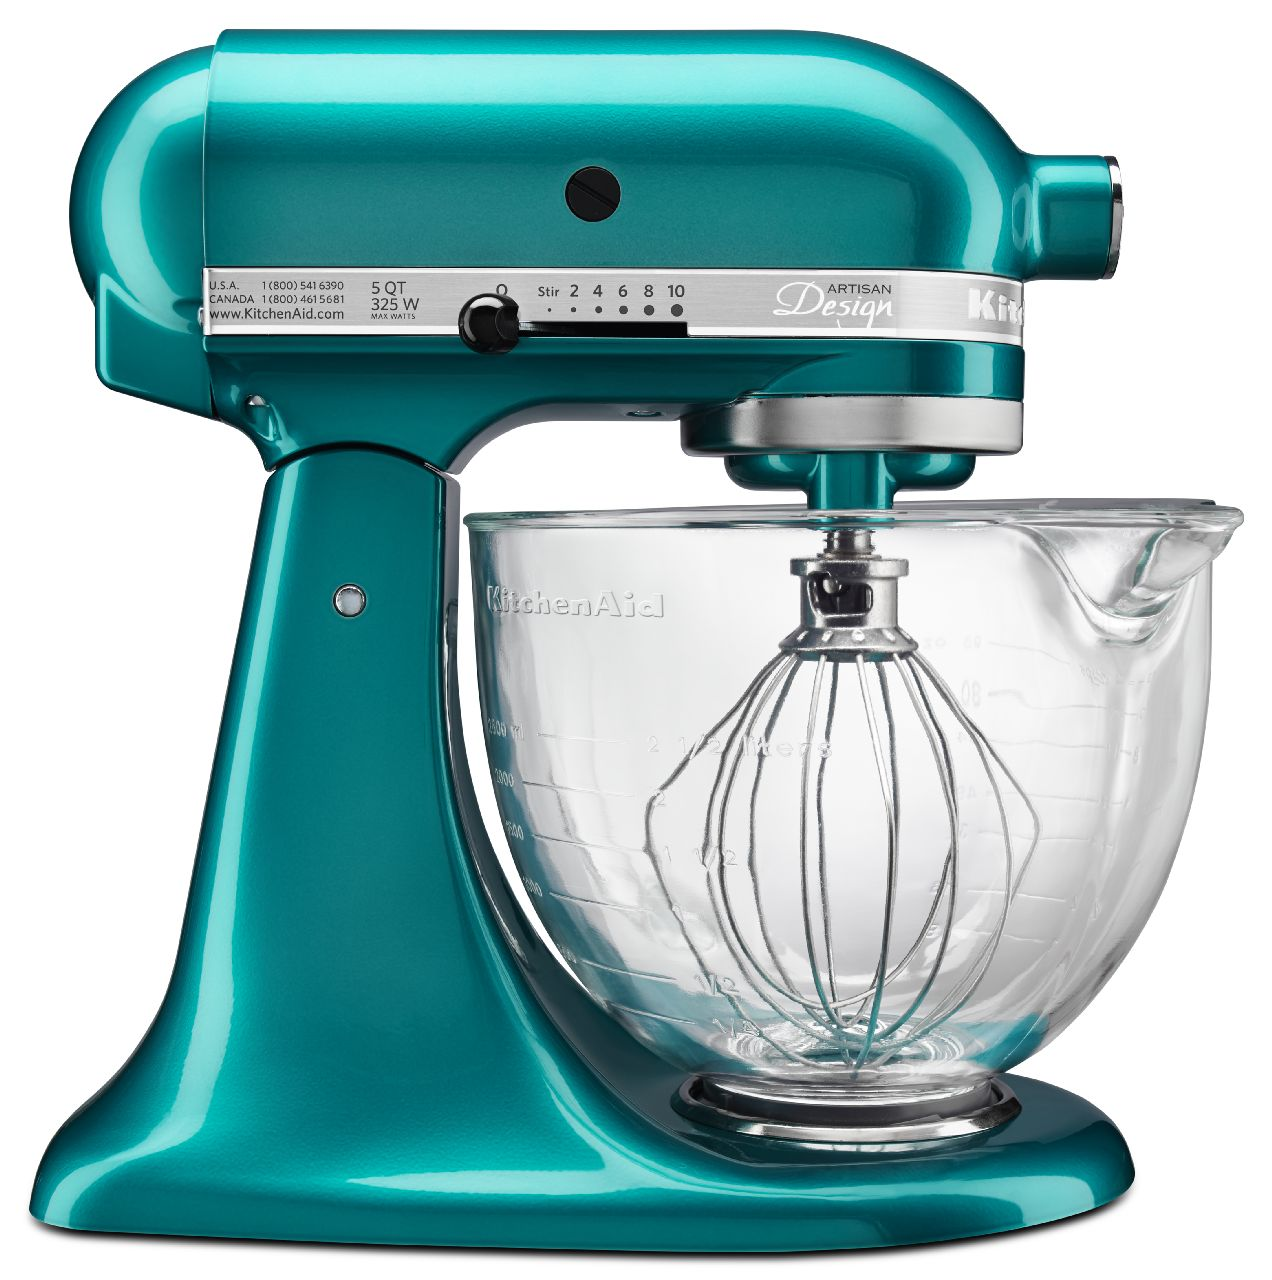 Bon KitchenAid KSM155GBSA Artisan Design Series Sea Glass 5 Quart Stand Mixer  With Glass Bowl